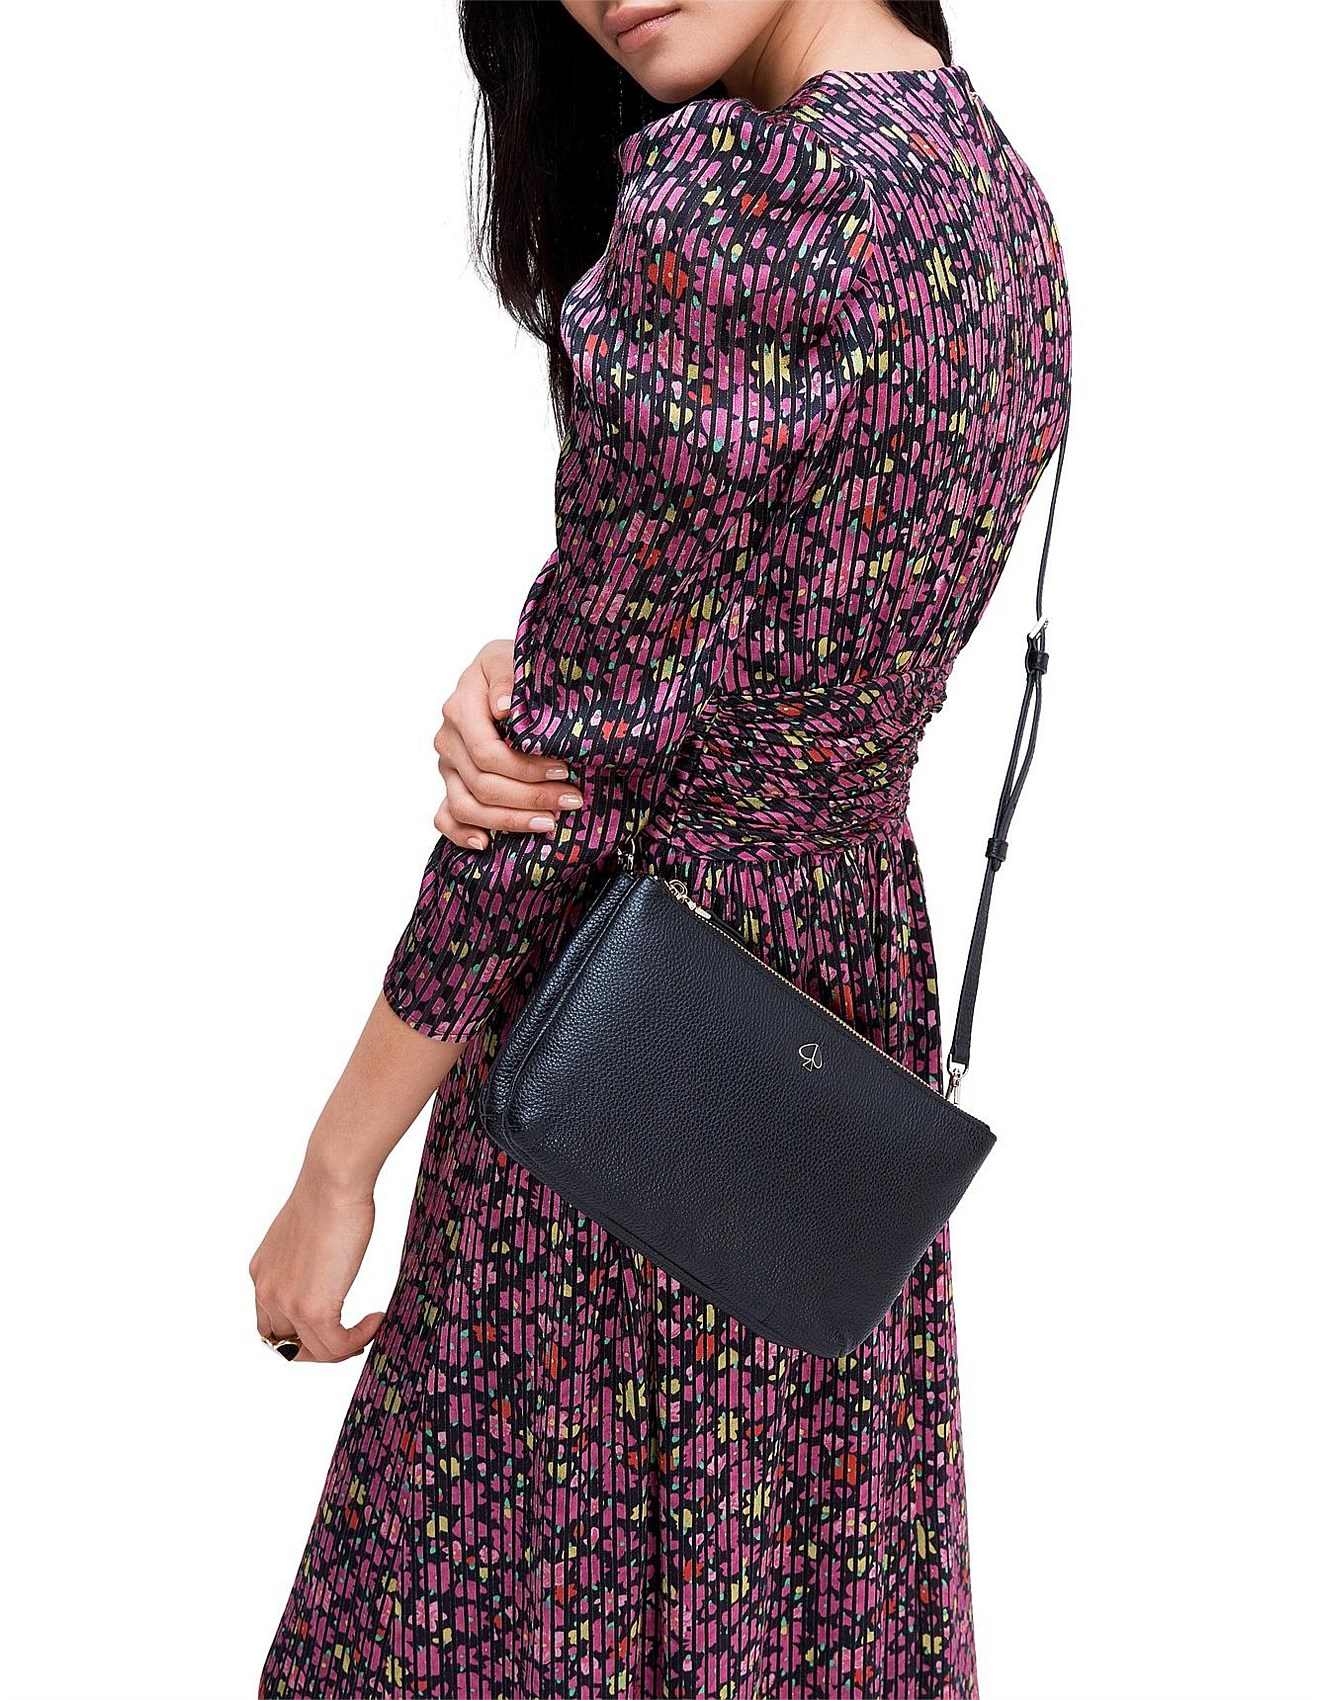 dd6aa57f69d Bags & Accessories - POLLY MEDIUM DOUBLE GUSSET CROSSBODY